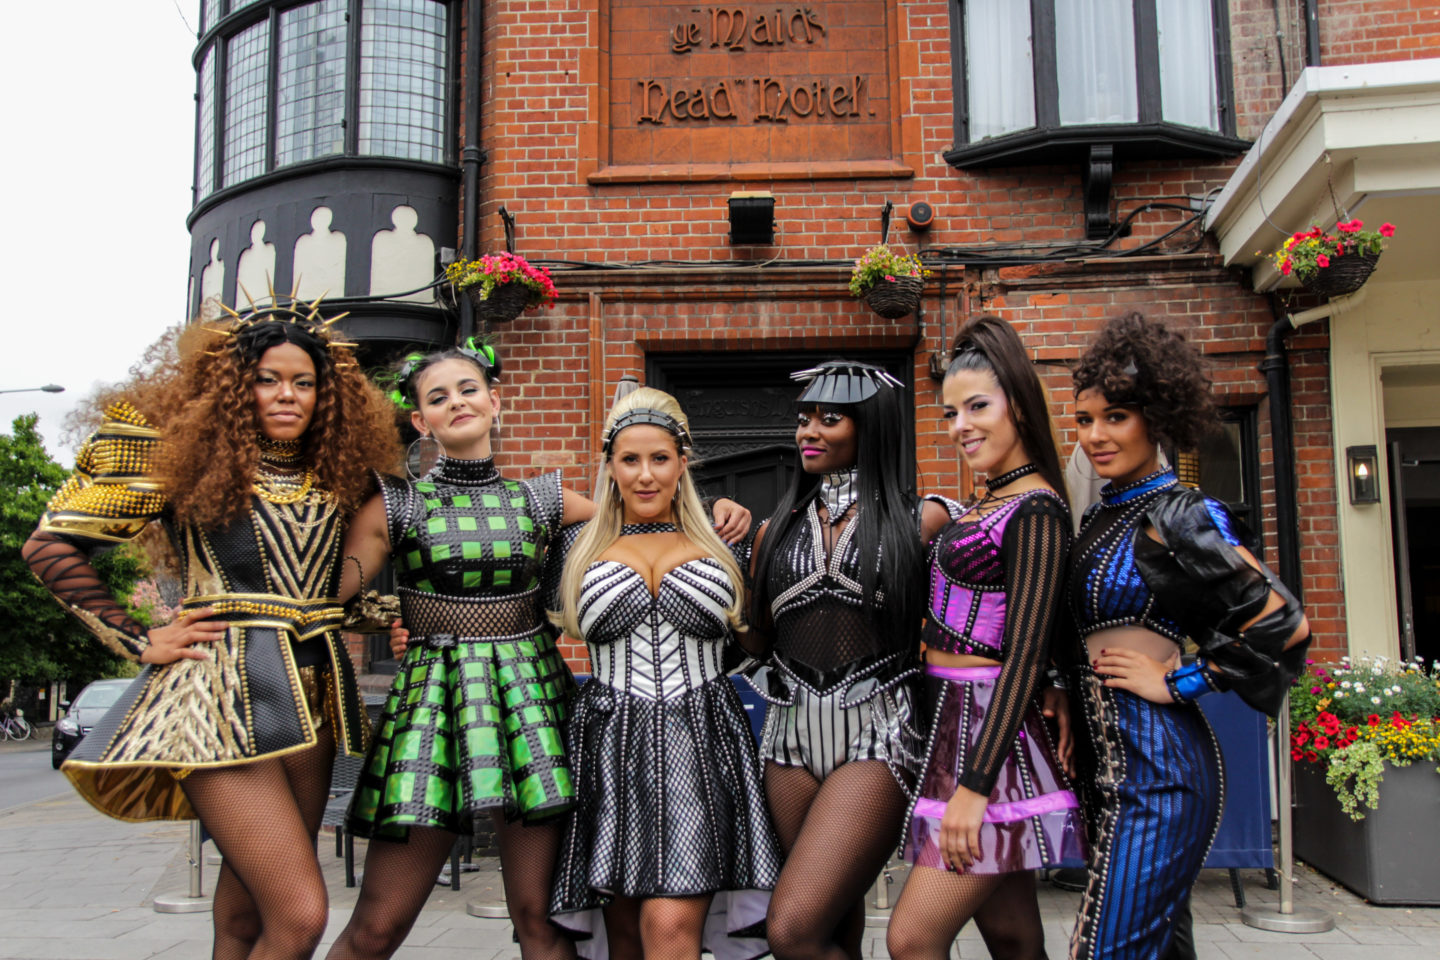 Six The Musical Cast members outside Maids Head Hotel Norwich